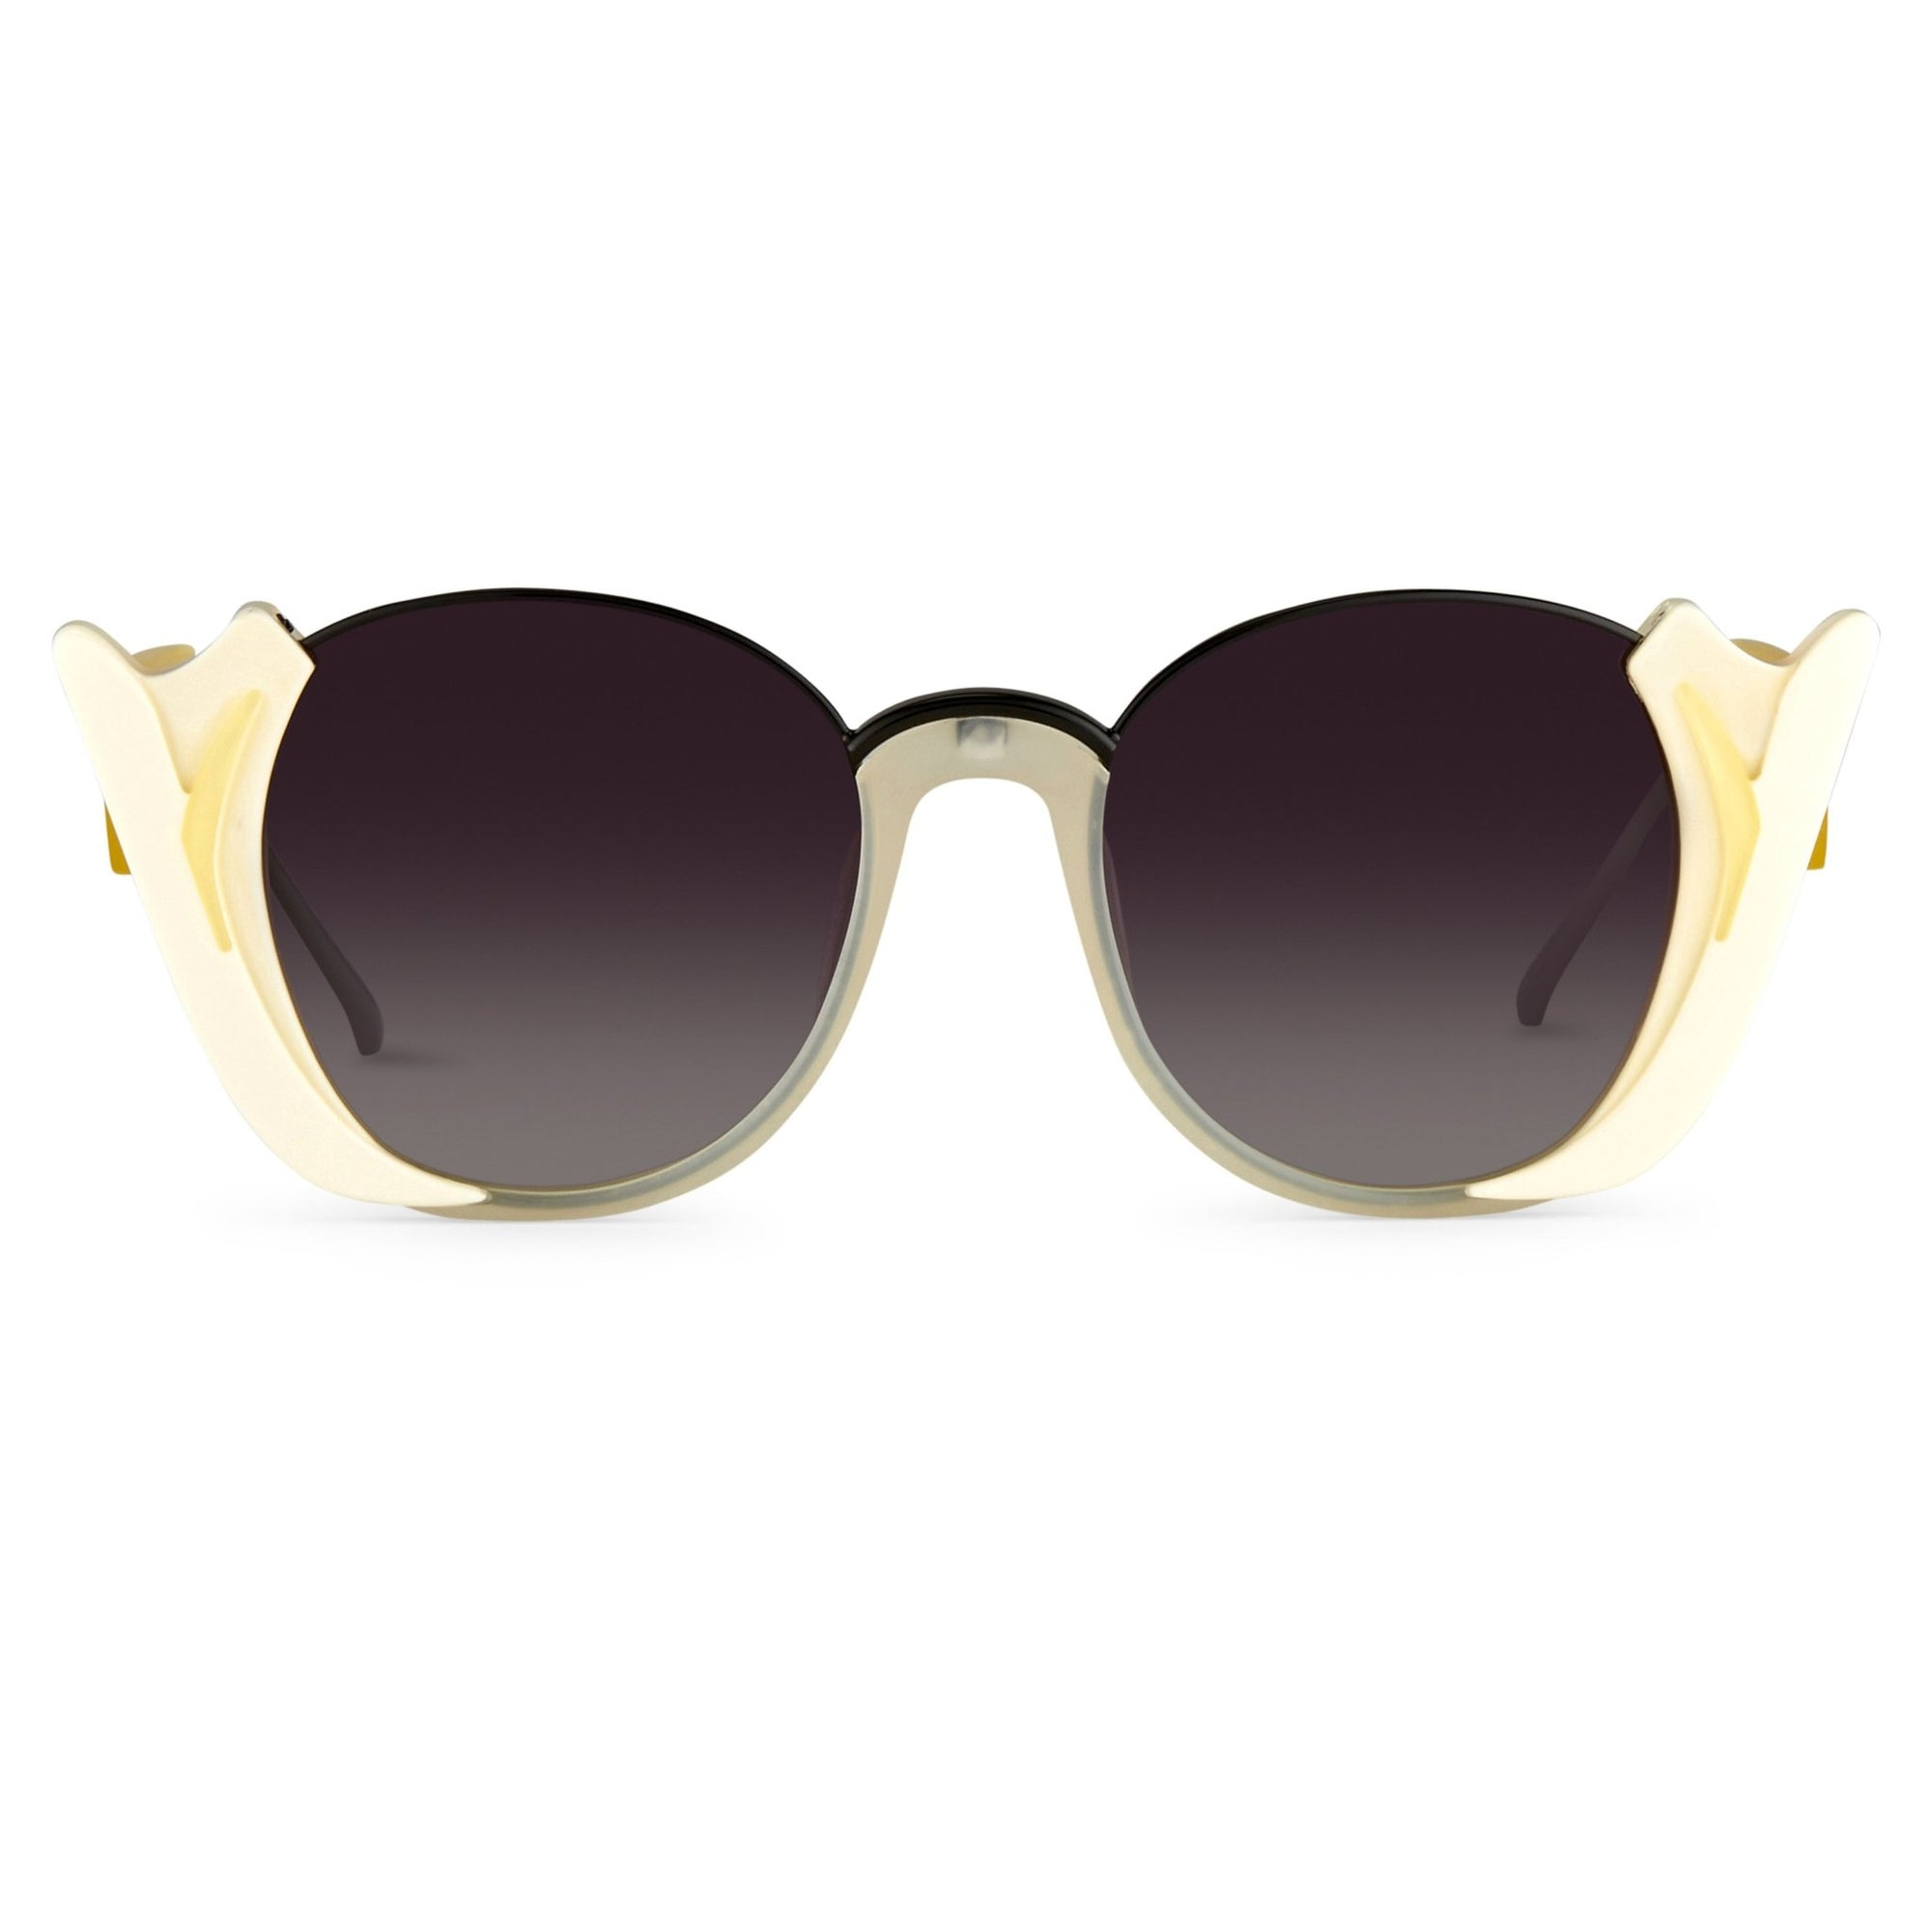 Prabal Gurung Sunglasses Round Clear Ivory White With Dark Grey Category 3 Graduated Lenses PG24C3SUN - Watches & Crystals